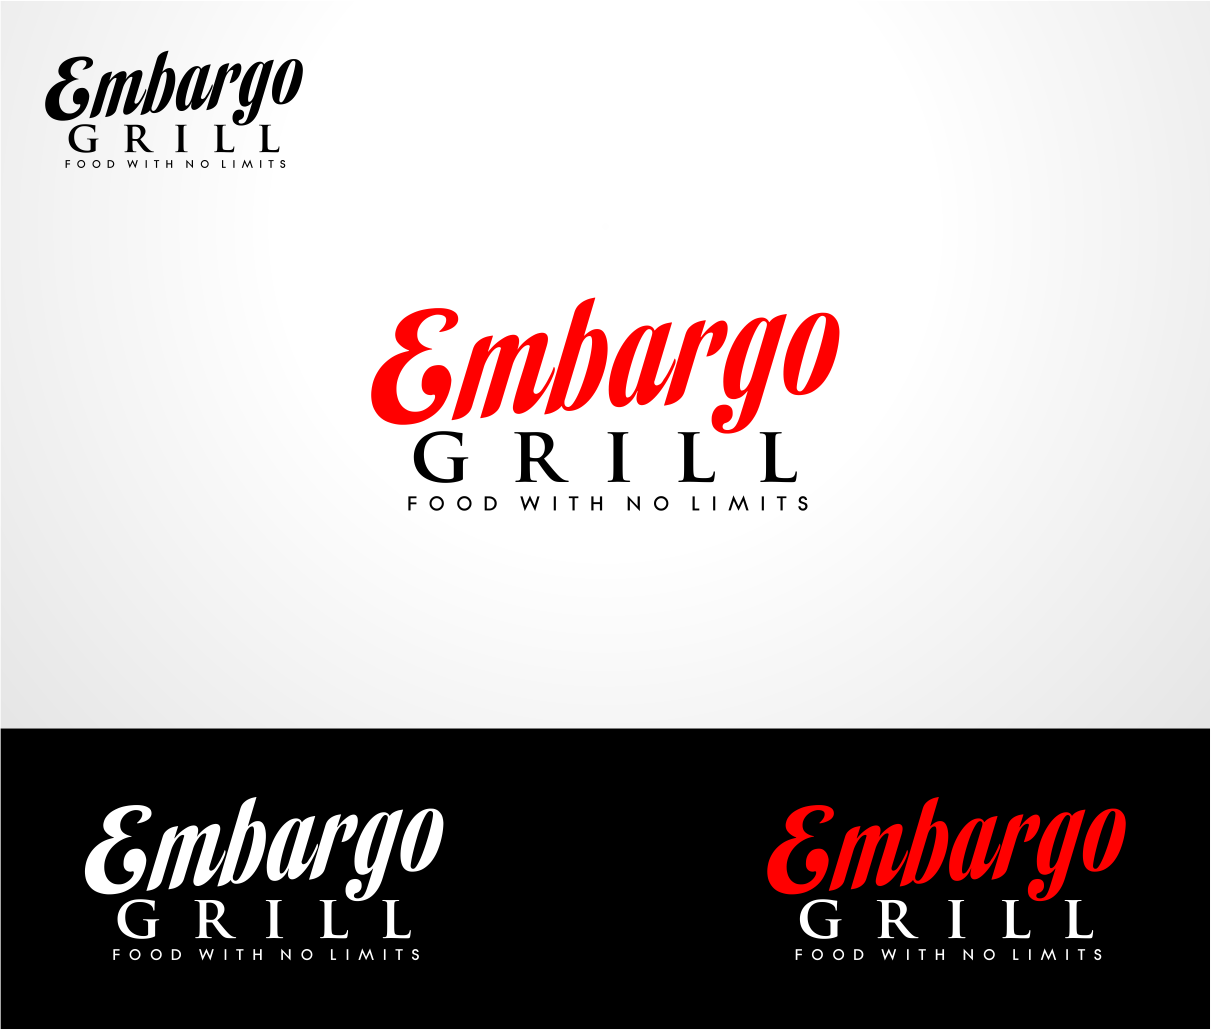 Logo Design by haidu - Entry No. 27 in the Logo Design Contest Captivating Logo Design for Embargo Grill.